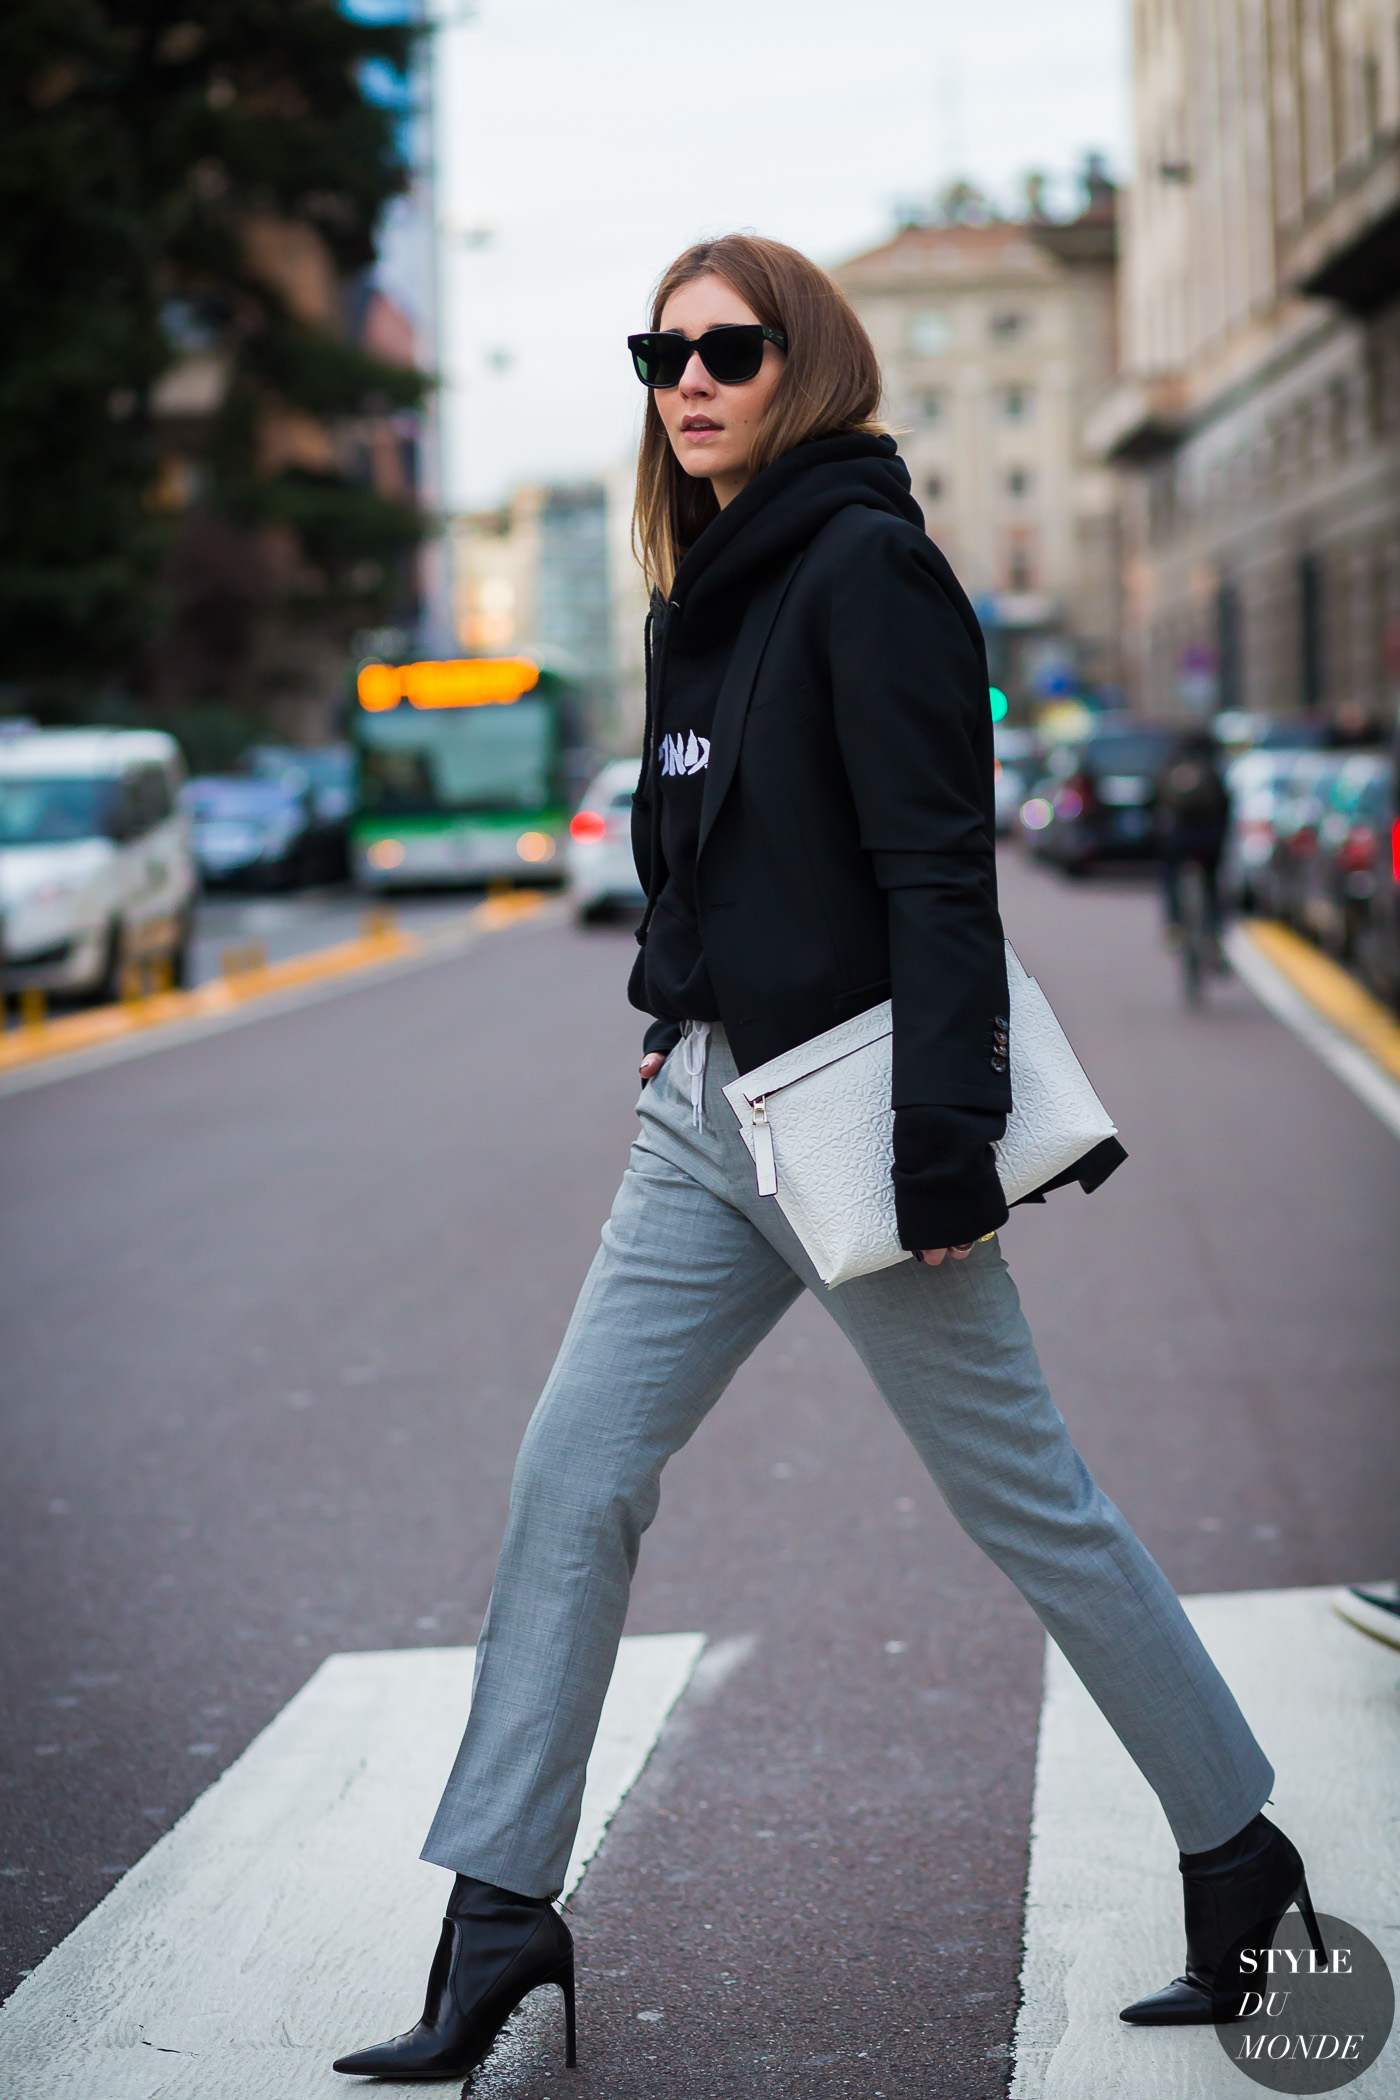 Chiara Capitani Street Style Street Fashion Streetsnaps by STYLEDUMONDE Street Style Fashion Photography